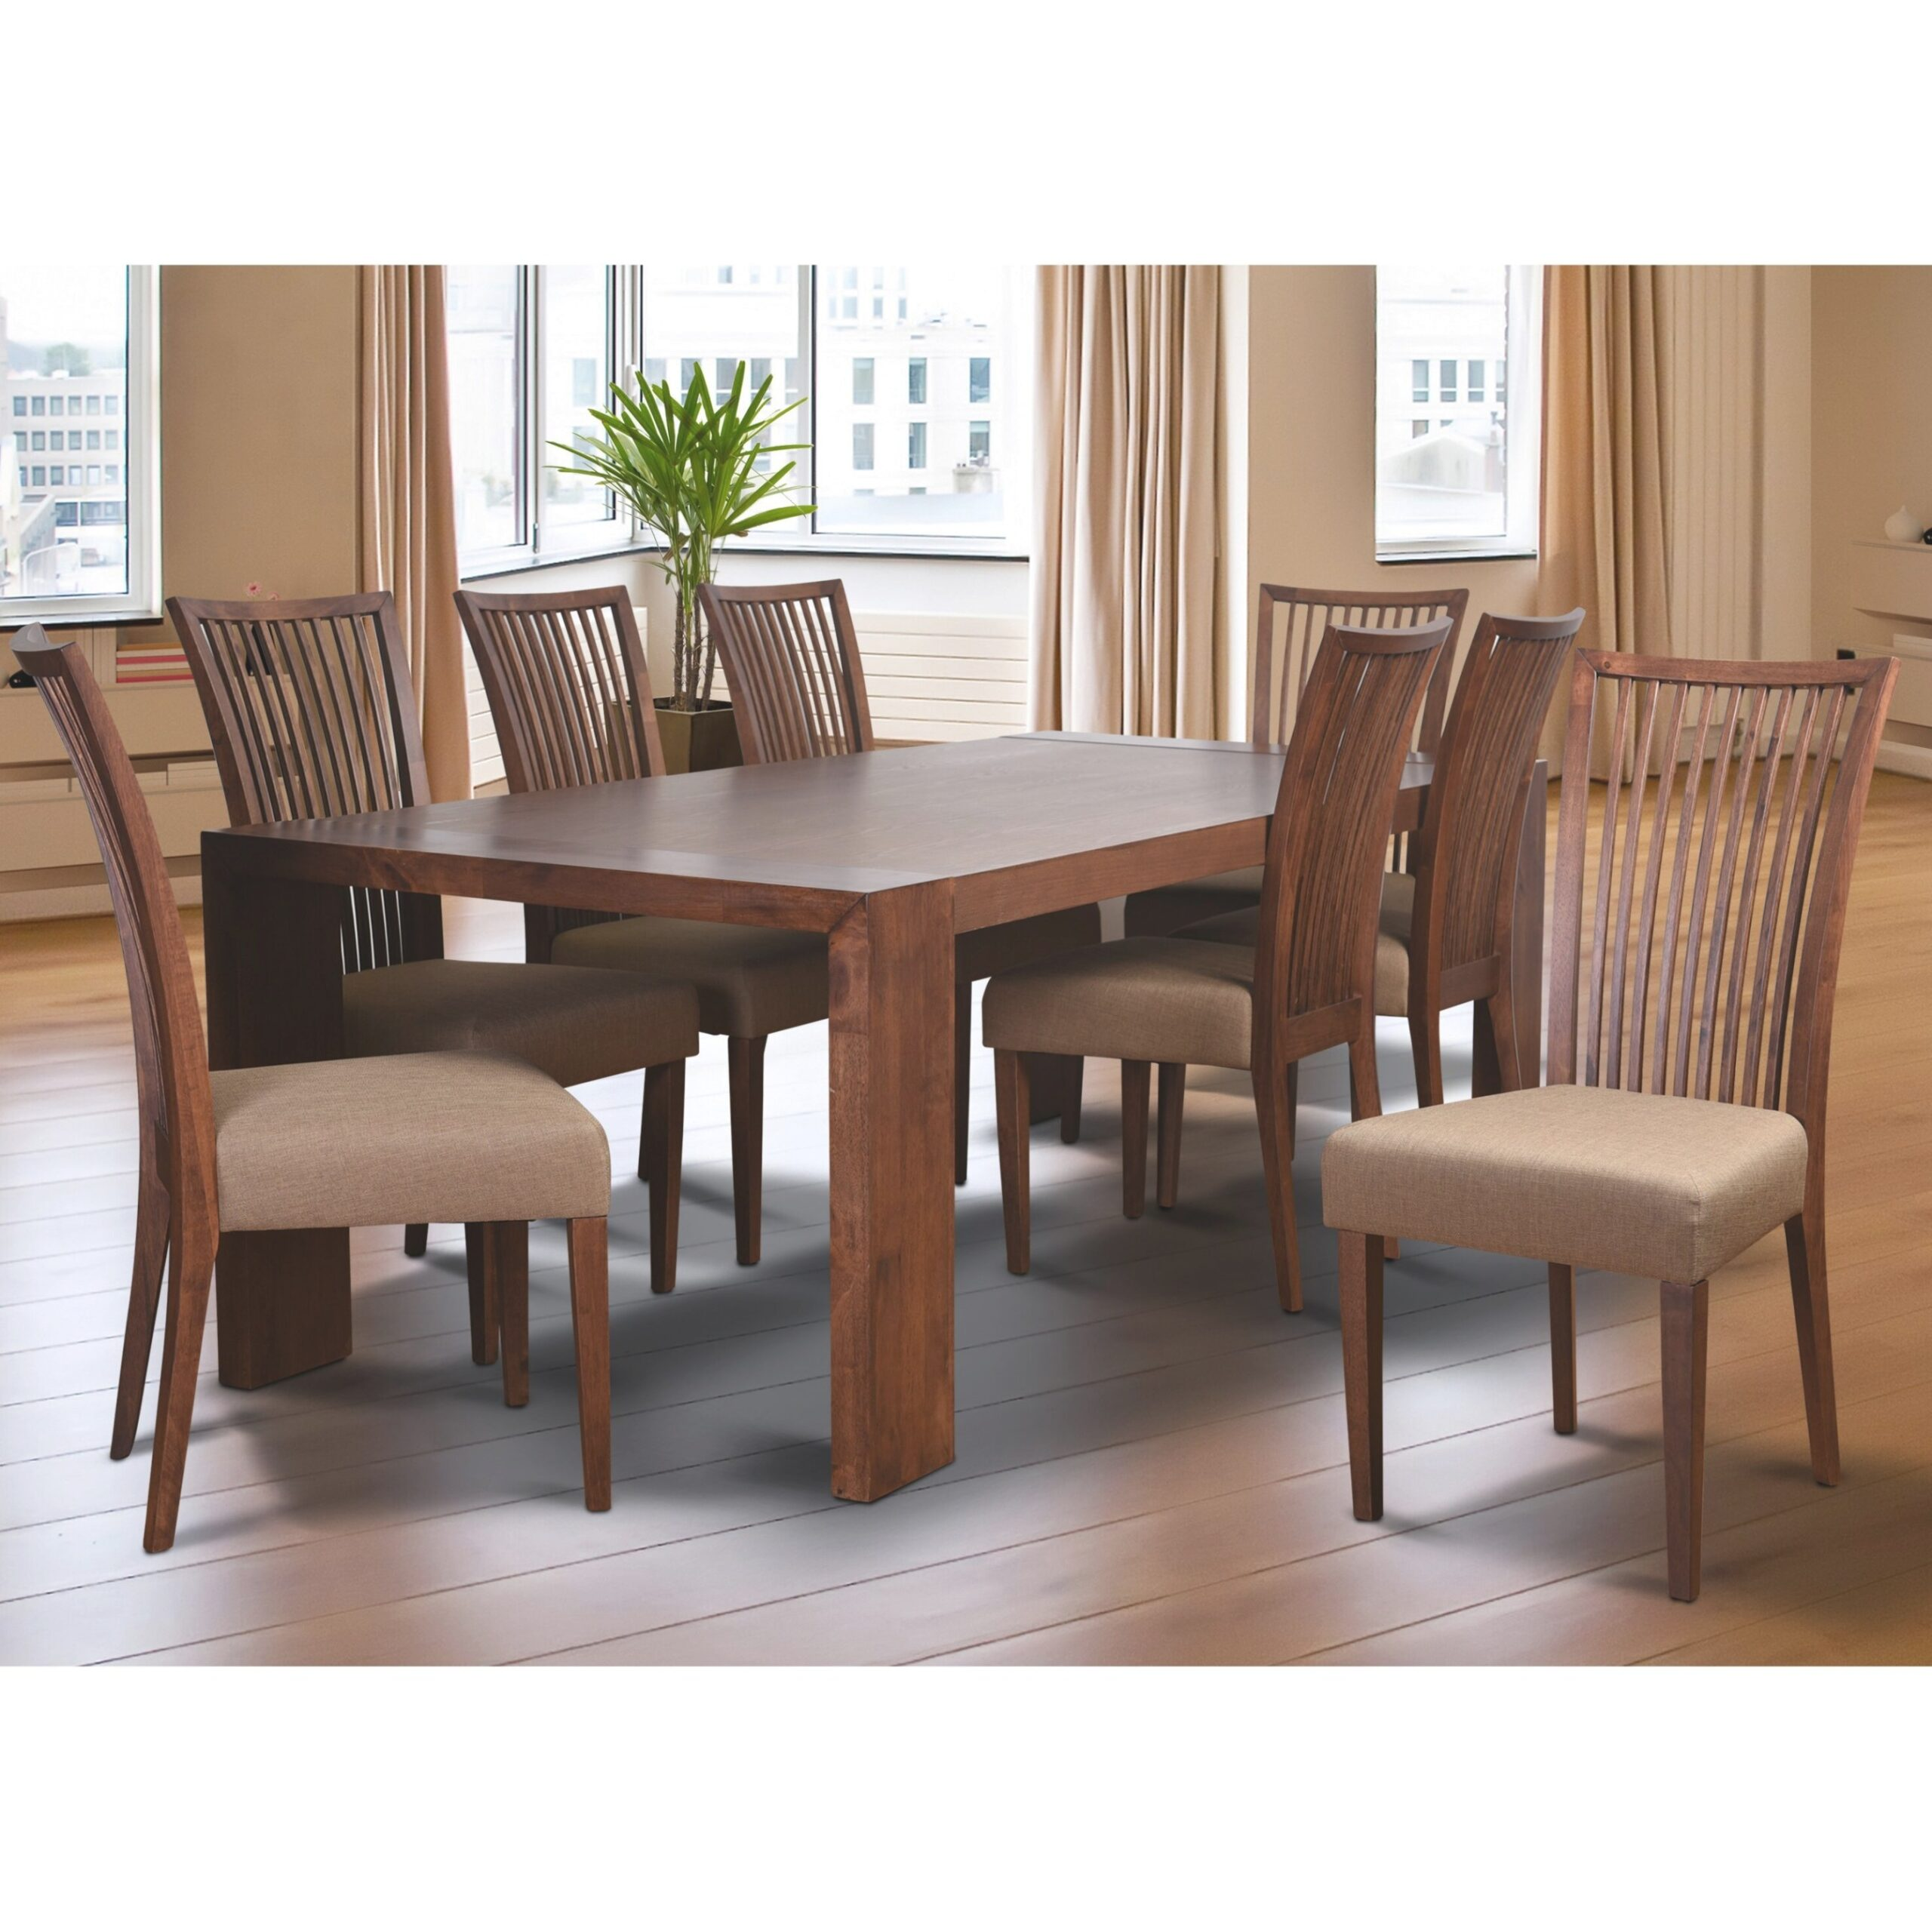 Latitude Run Bohostice 9 Piece Dining Set & Reviews pertaining to 9 Piece Dining Set